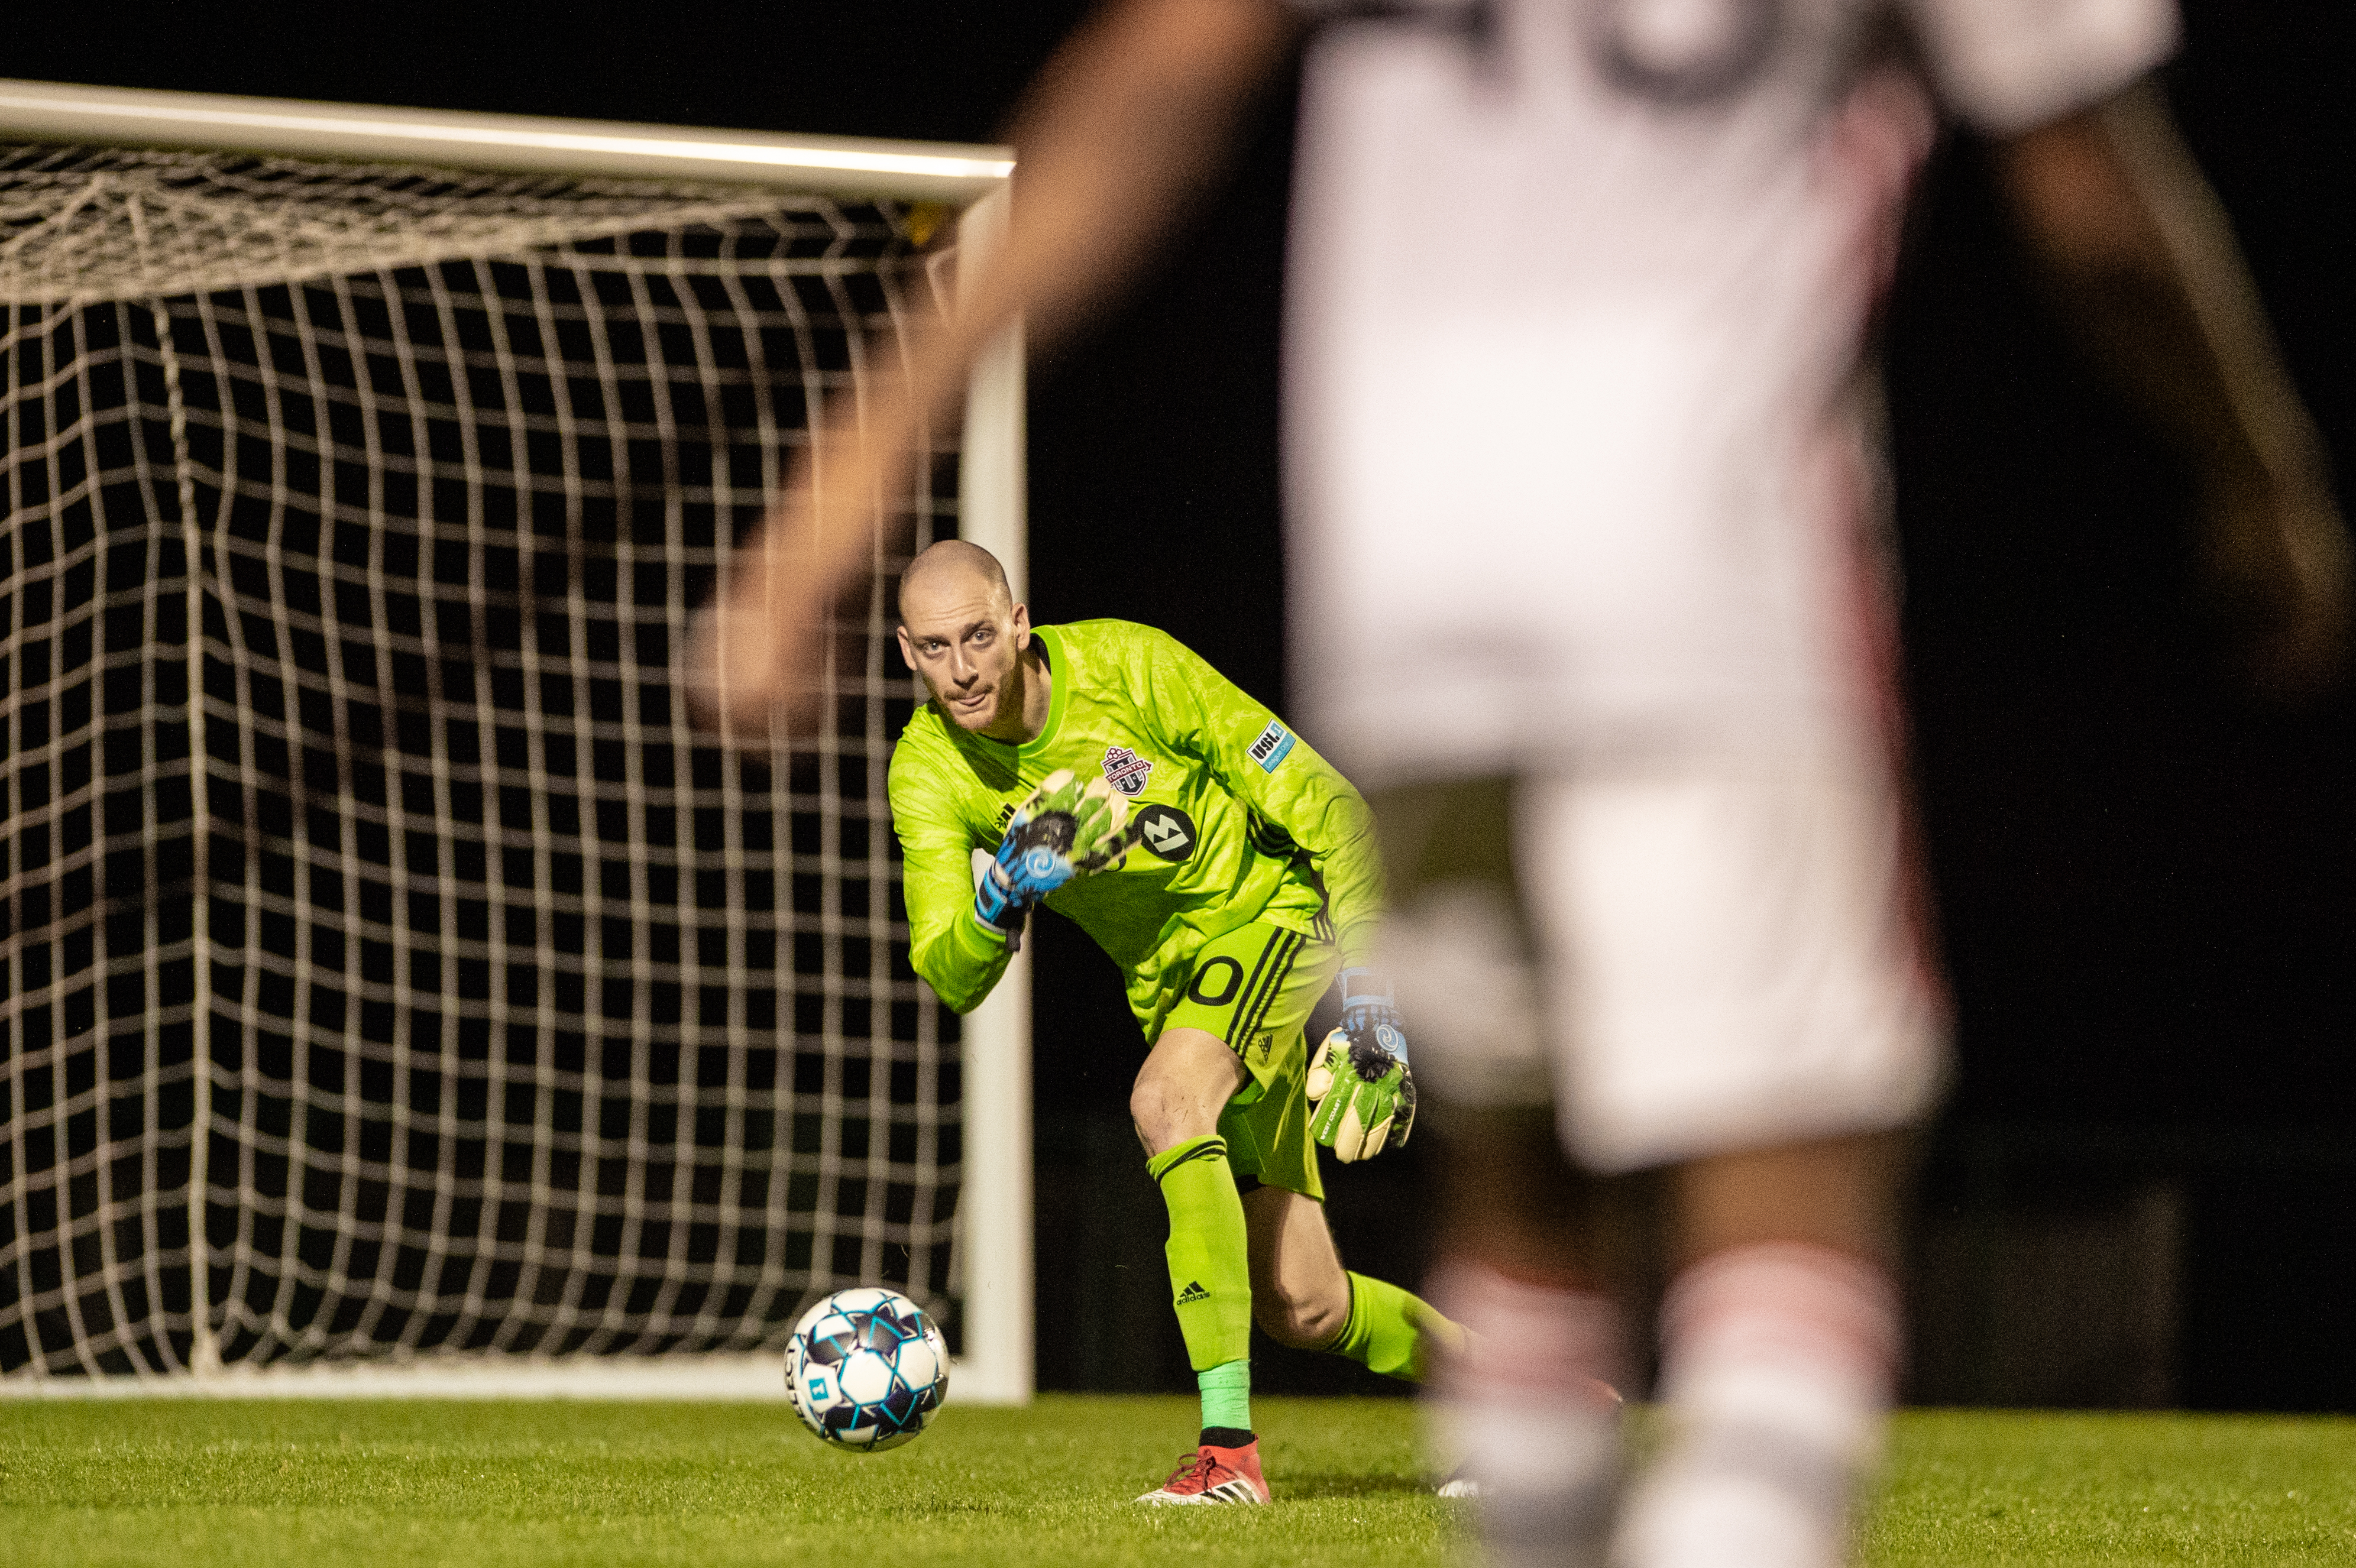 USL League One Photo - Toronto FC II goalkeeper Eric Klenofsky begins a move by rolling a ball out to a teammate in their season-opening 2-0 win over Orlando City B on Friday night